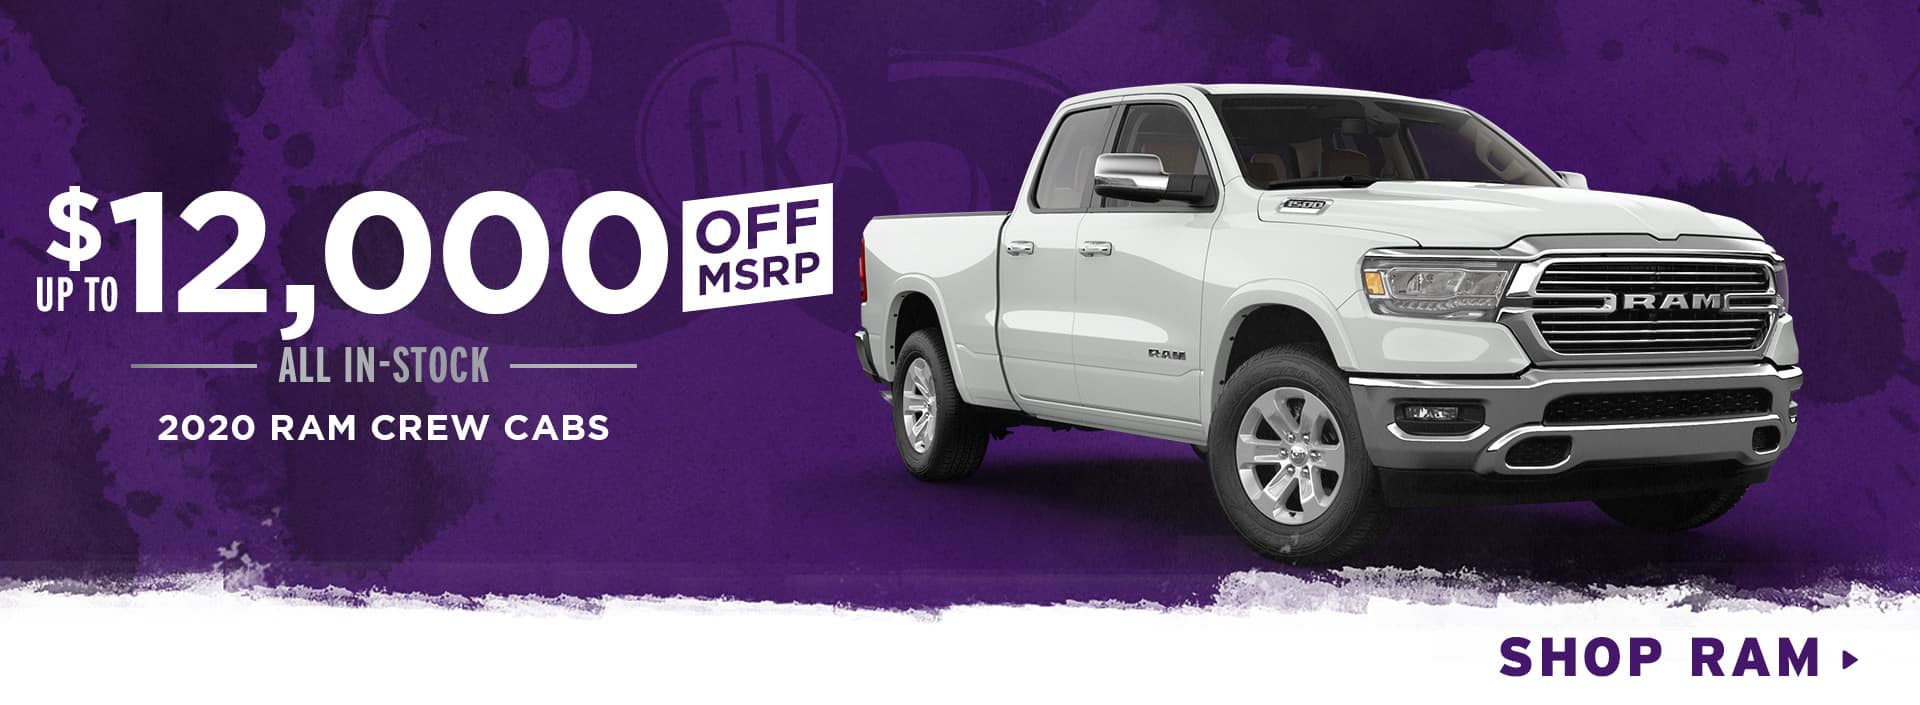 Up To $12,000 Off All In-Stock 2020 Ram Crew Cabs